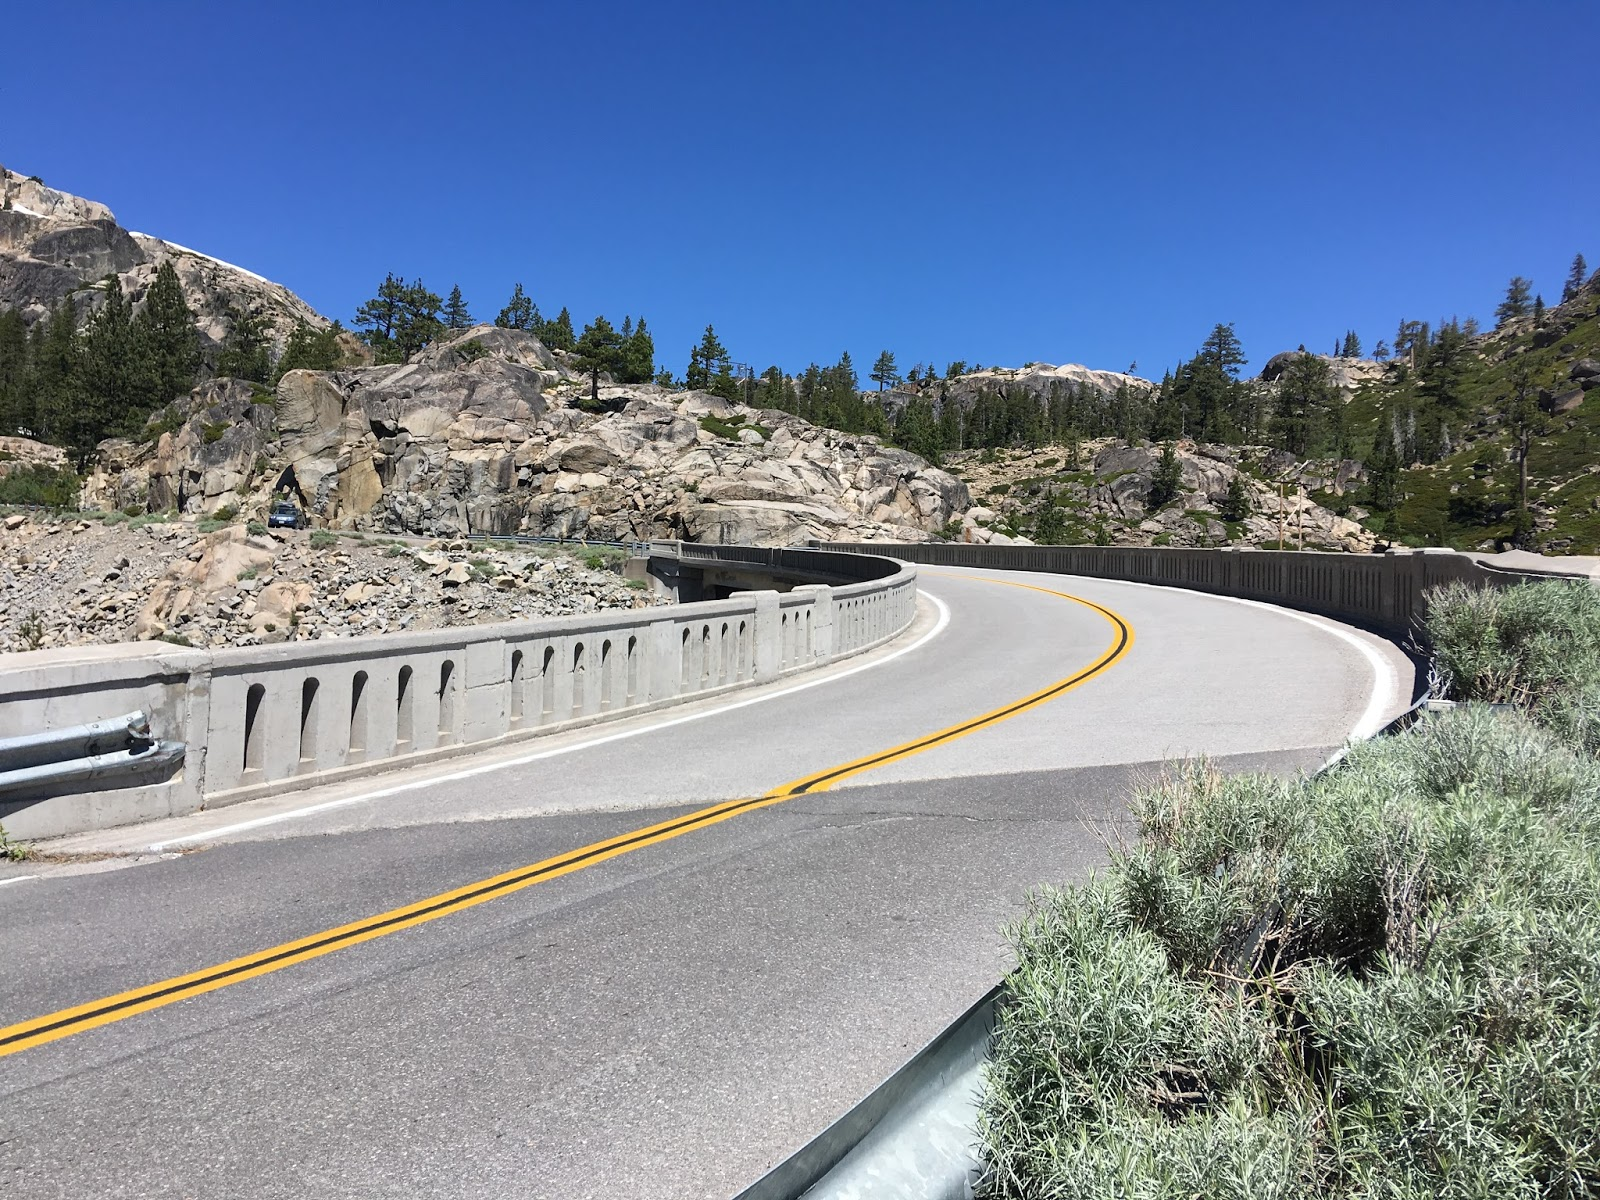 the final climb over the rainbow bridge to donner pass narrows slightly donner pass is signed at 7 135 feet above sea level